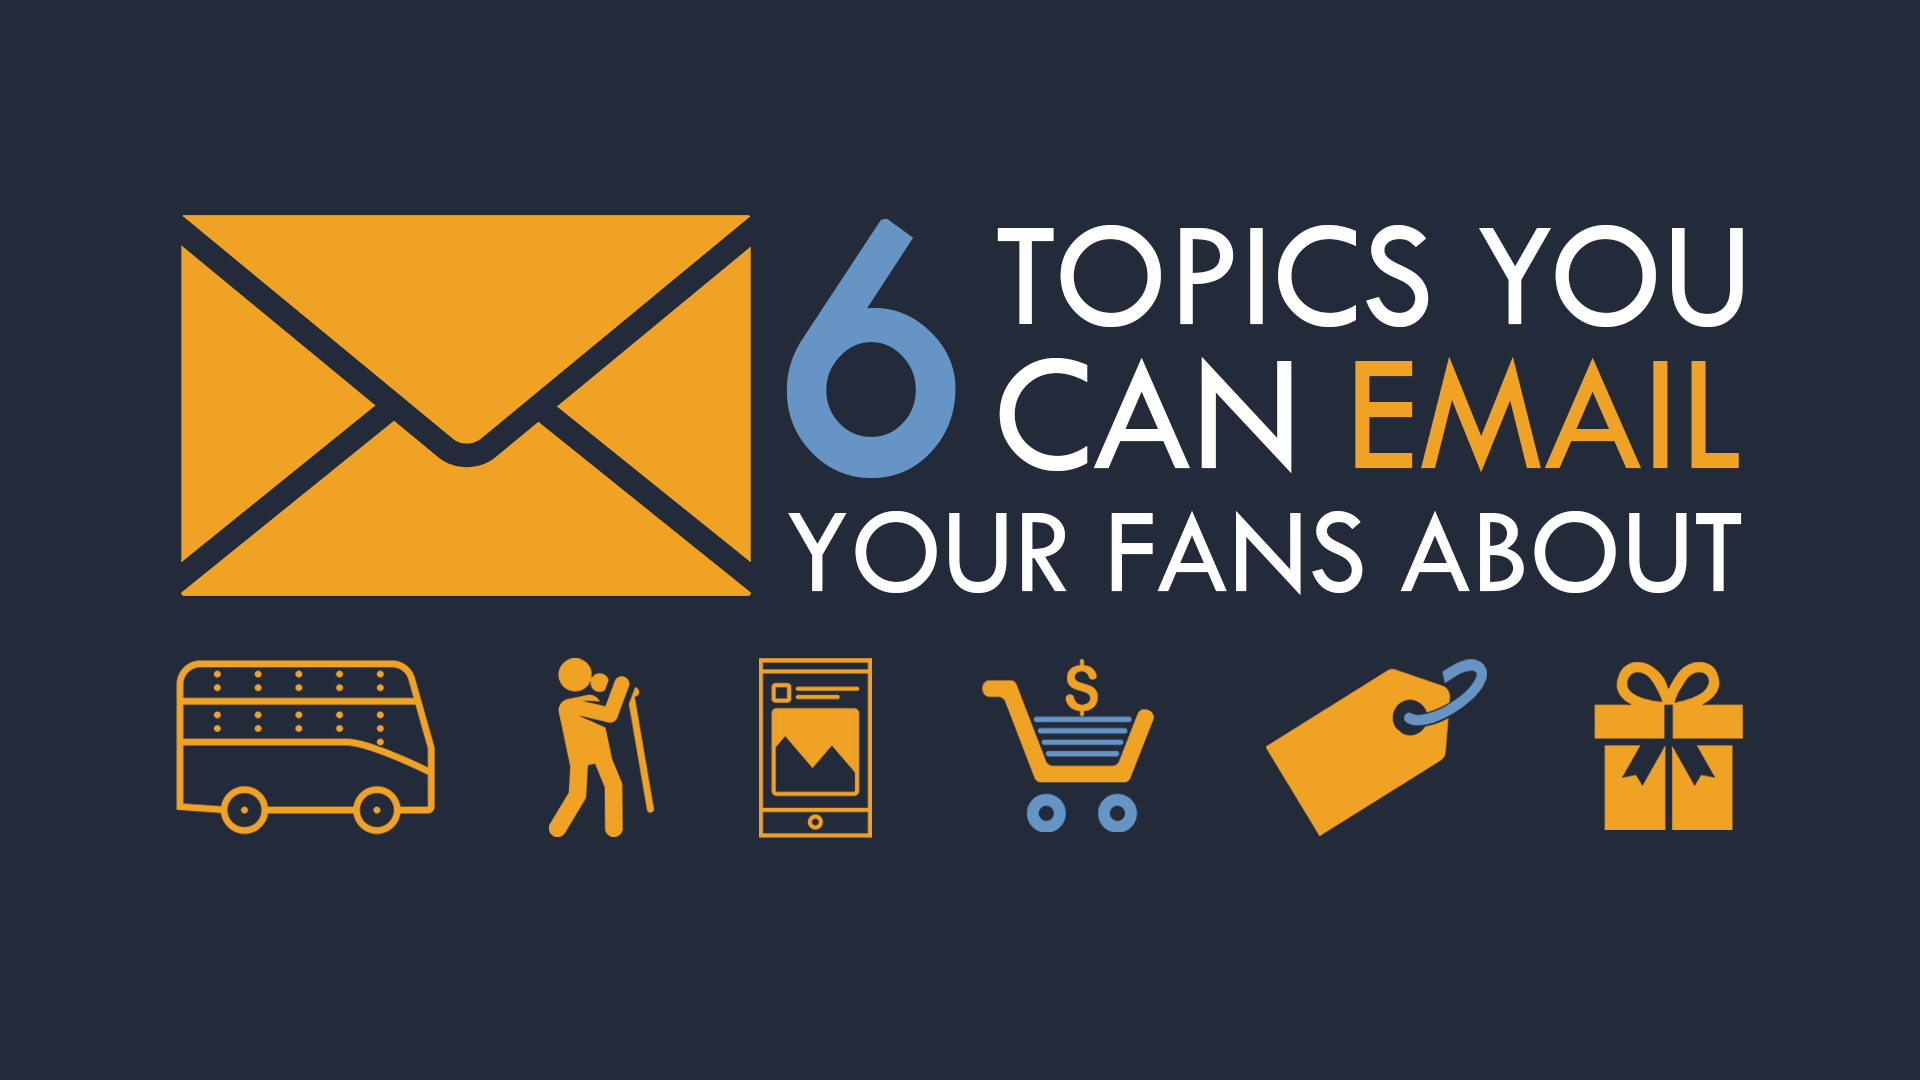 emailing fans